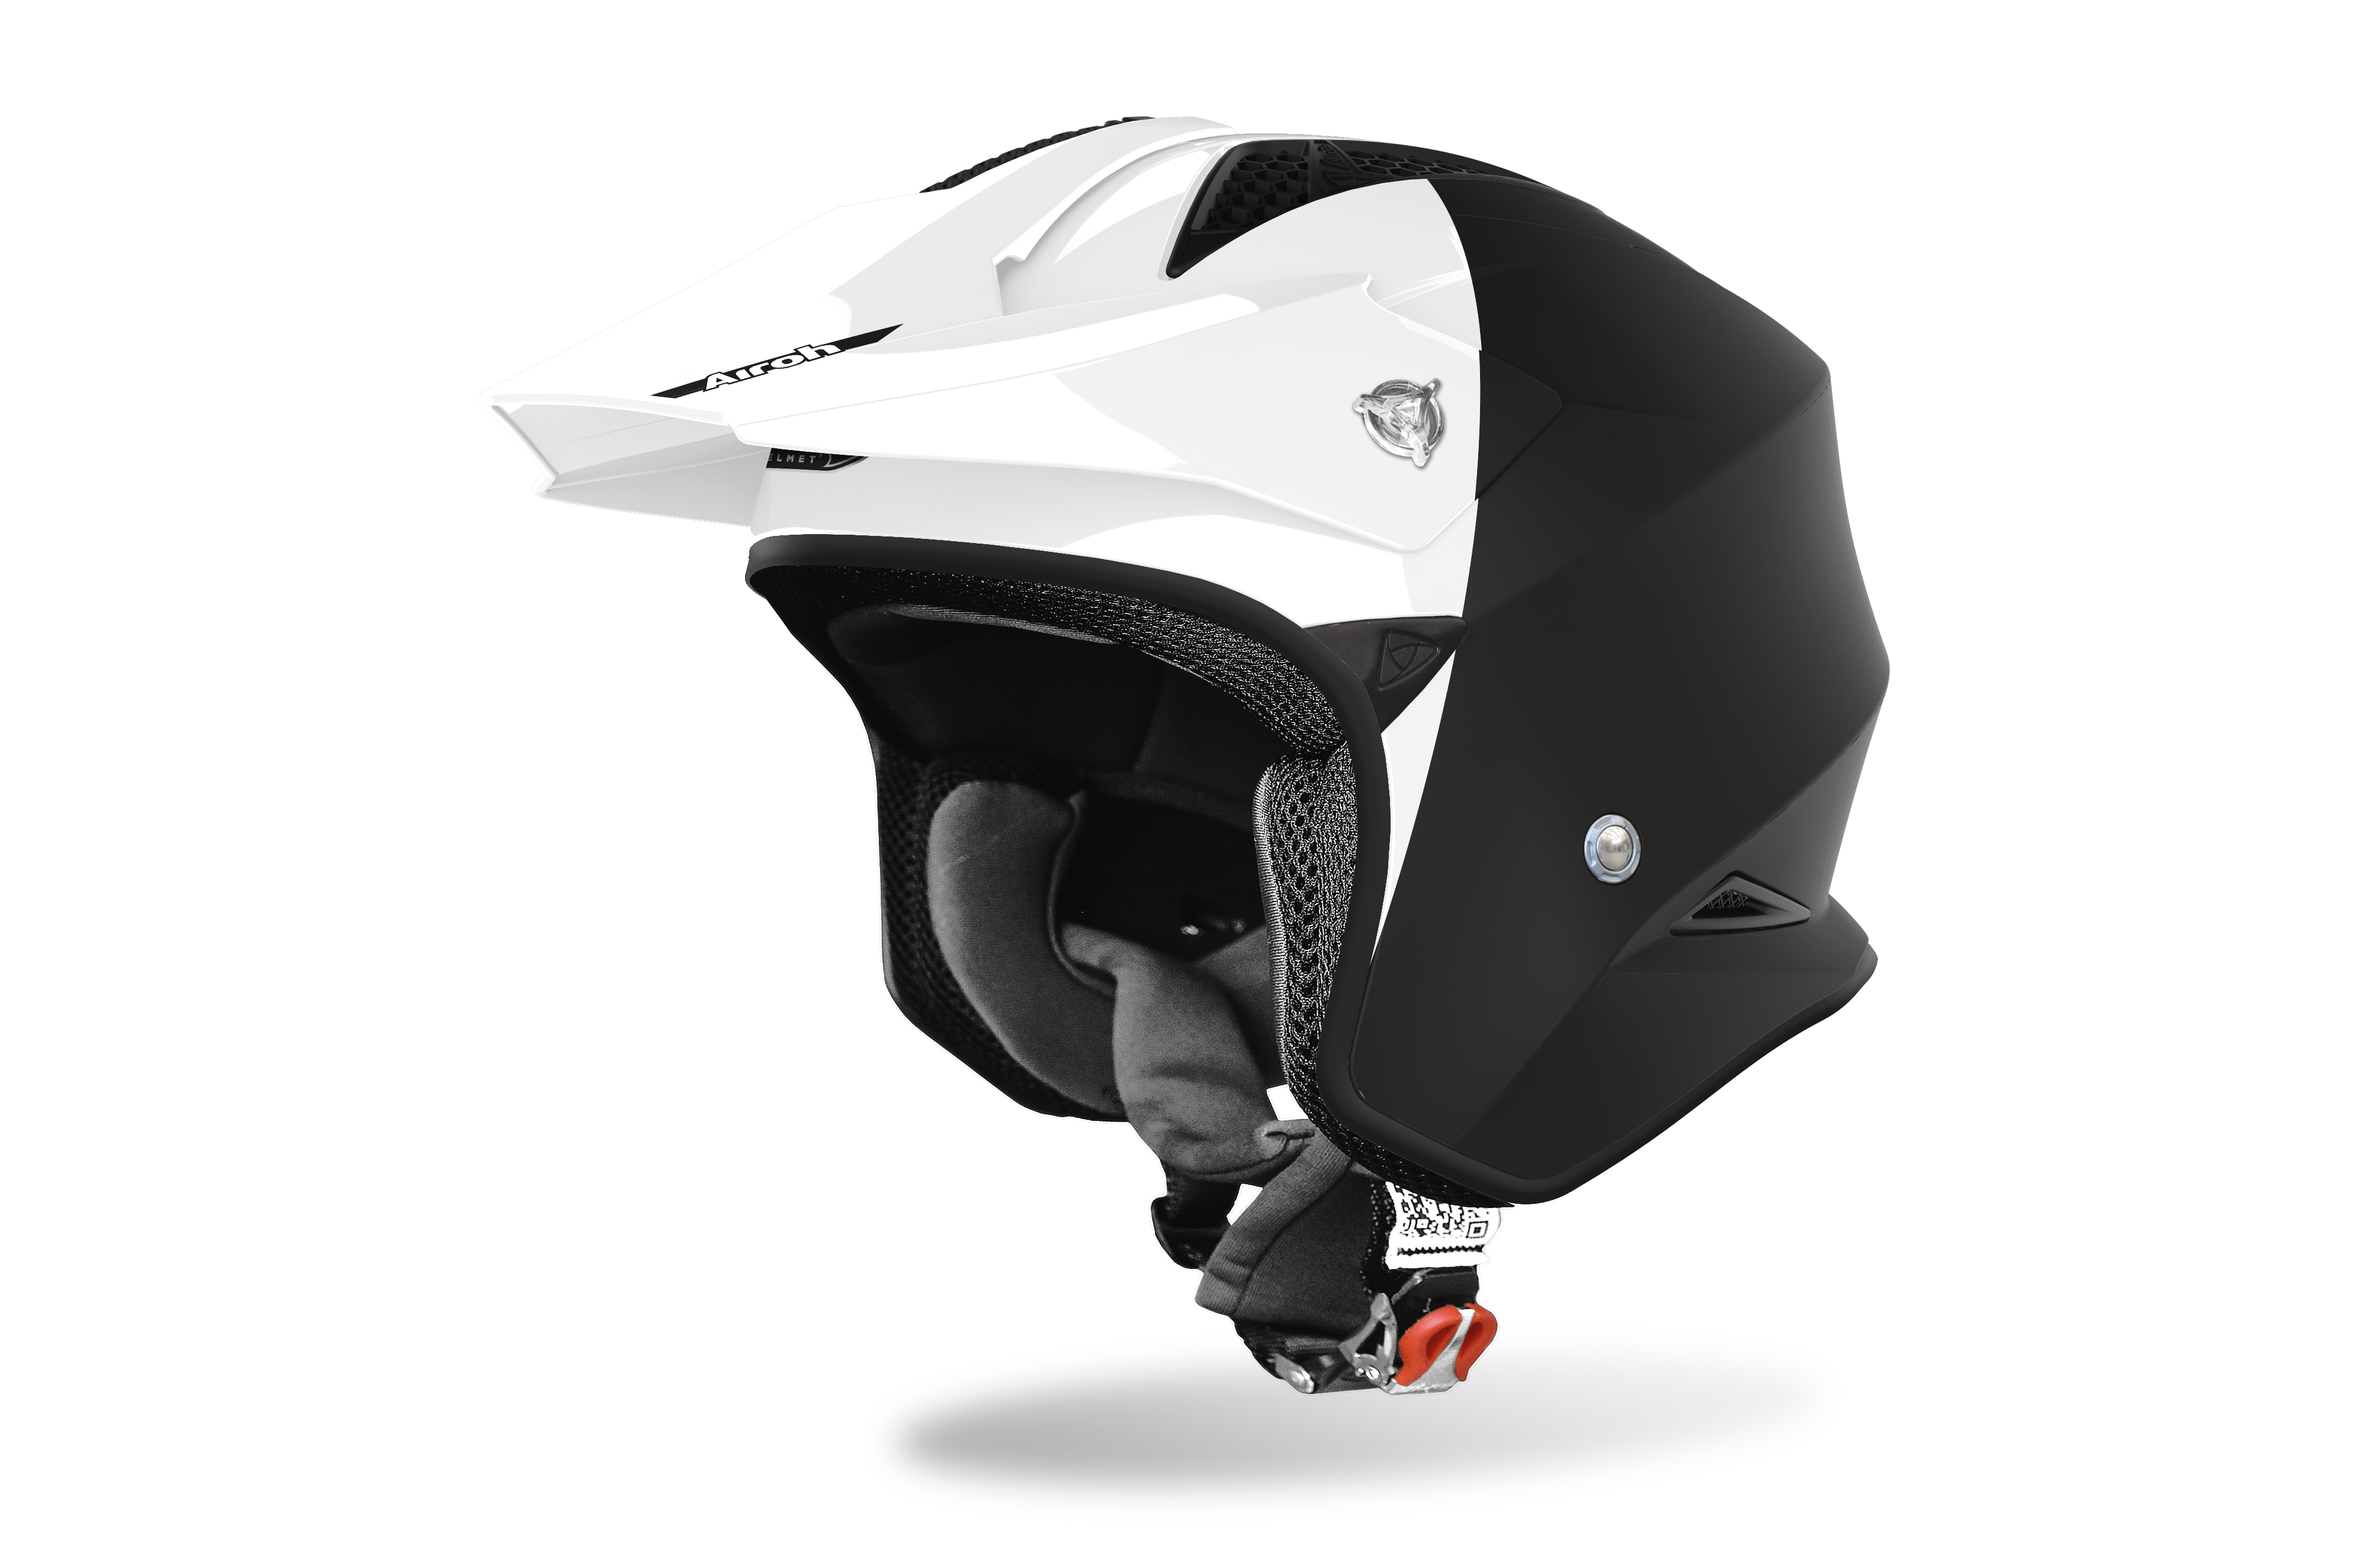 Airoh Casco TRR S TOWN Nero Bianco  Lucido\Opaco TRRST35